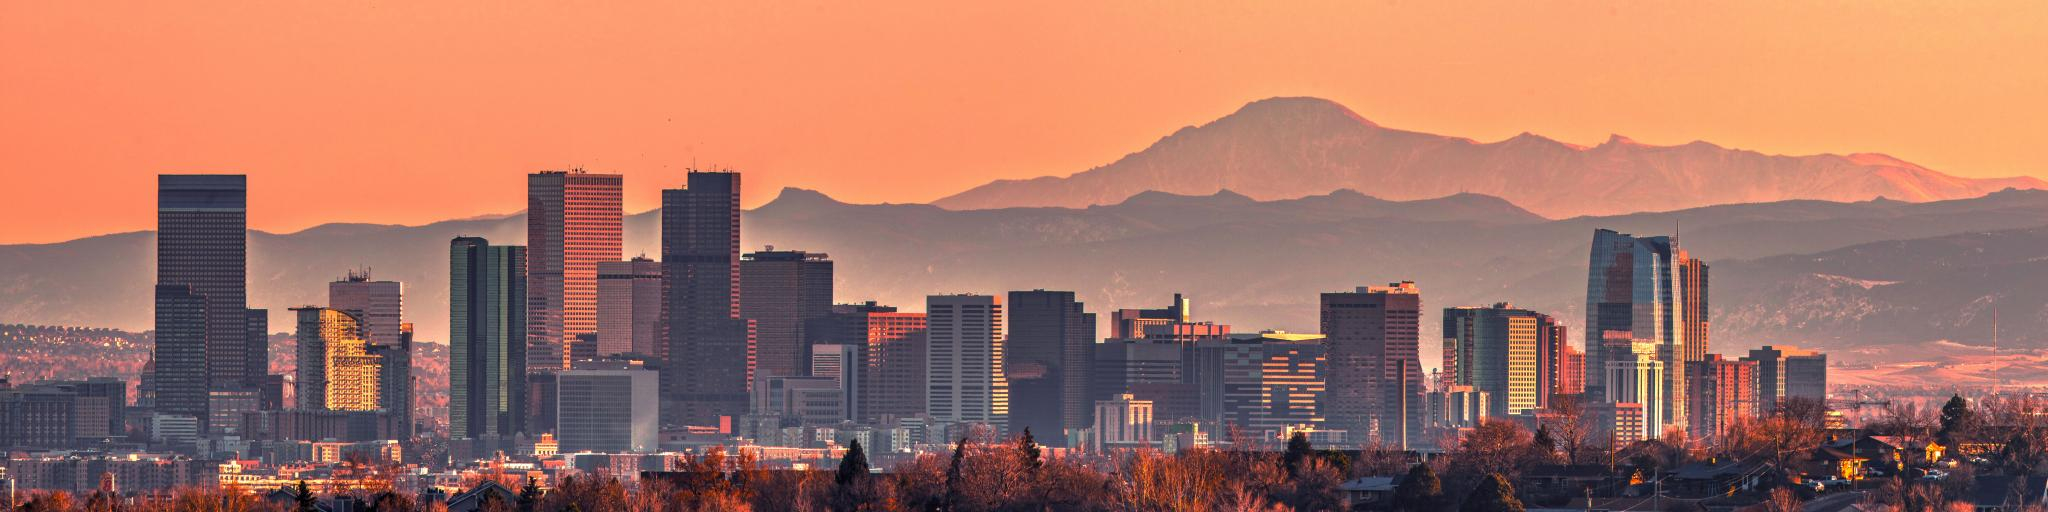 Denver skyline at sunset with Rocky Mountains in the background.